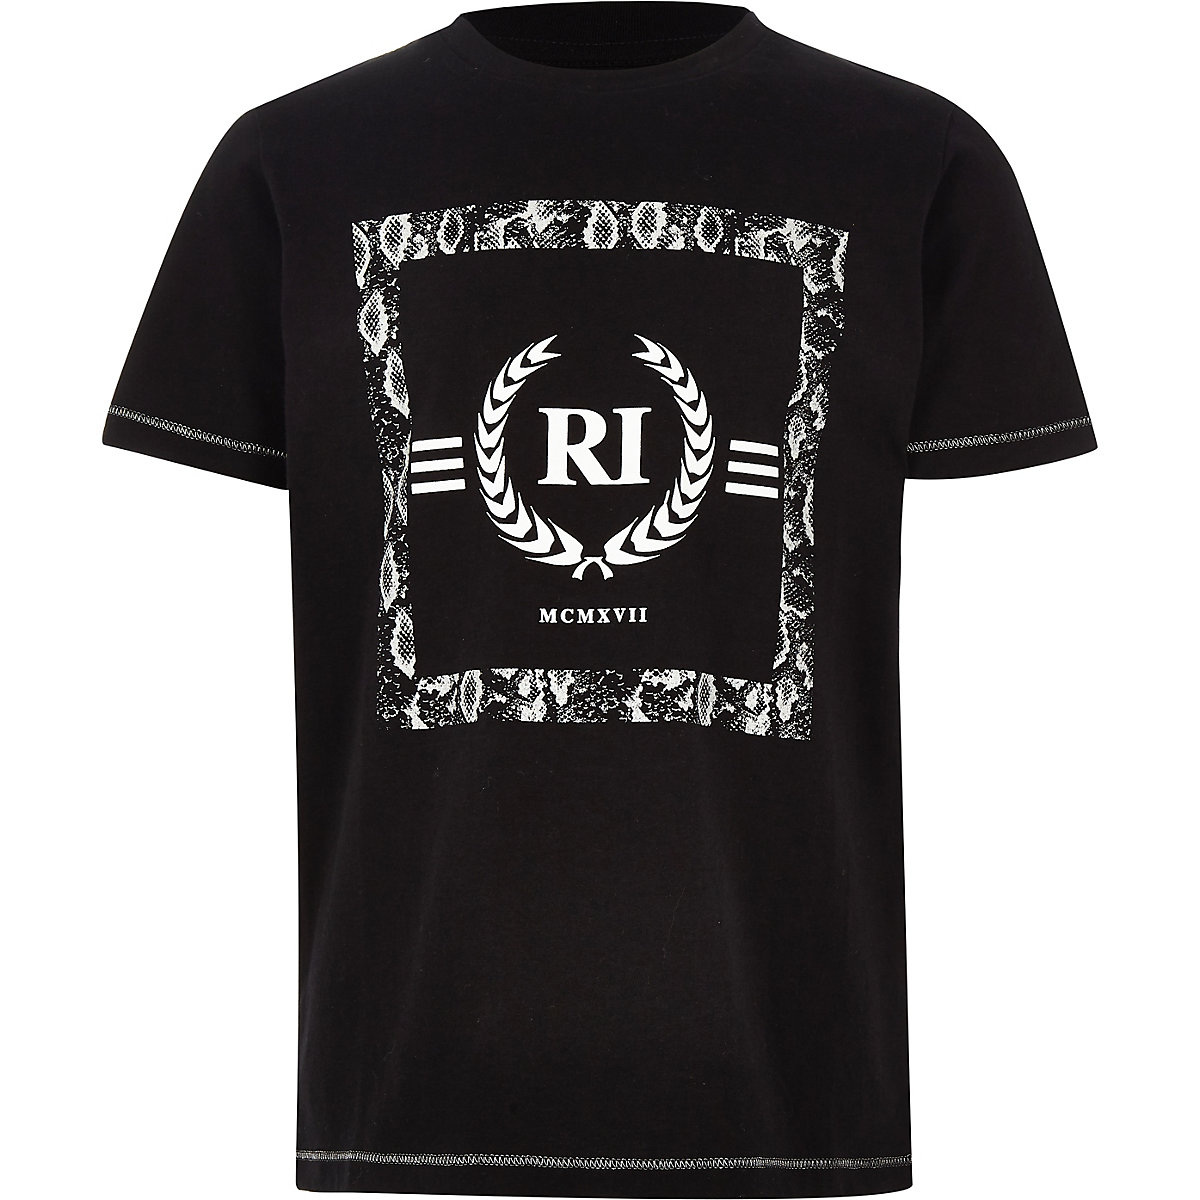 Boys black RI short sleeve T-shirt